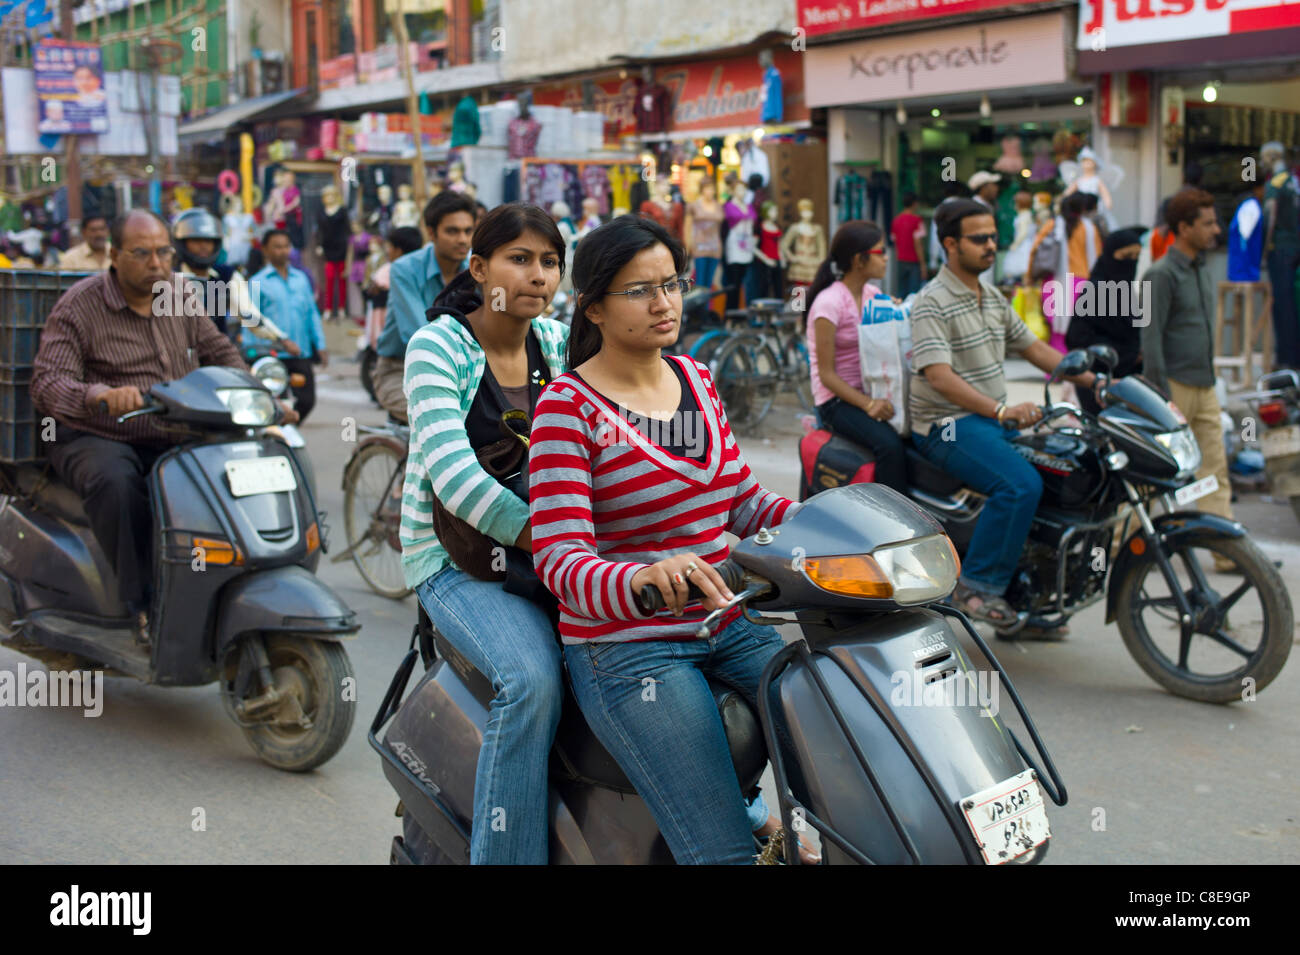 Image result for Indian city scene